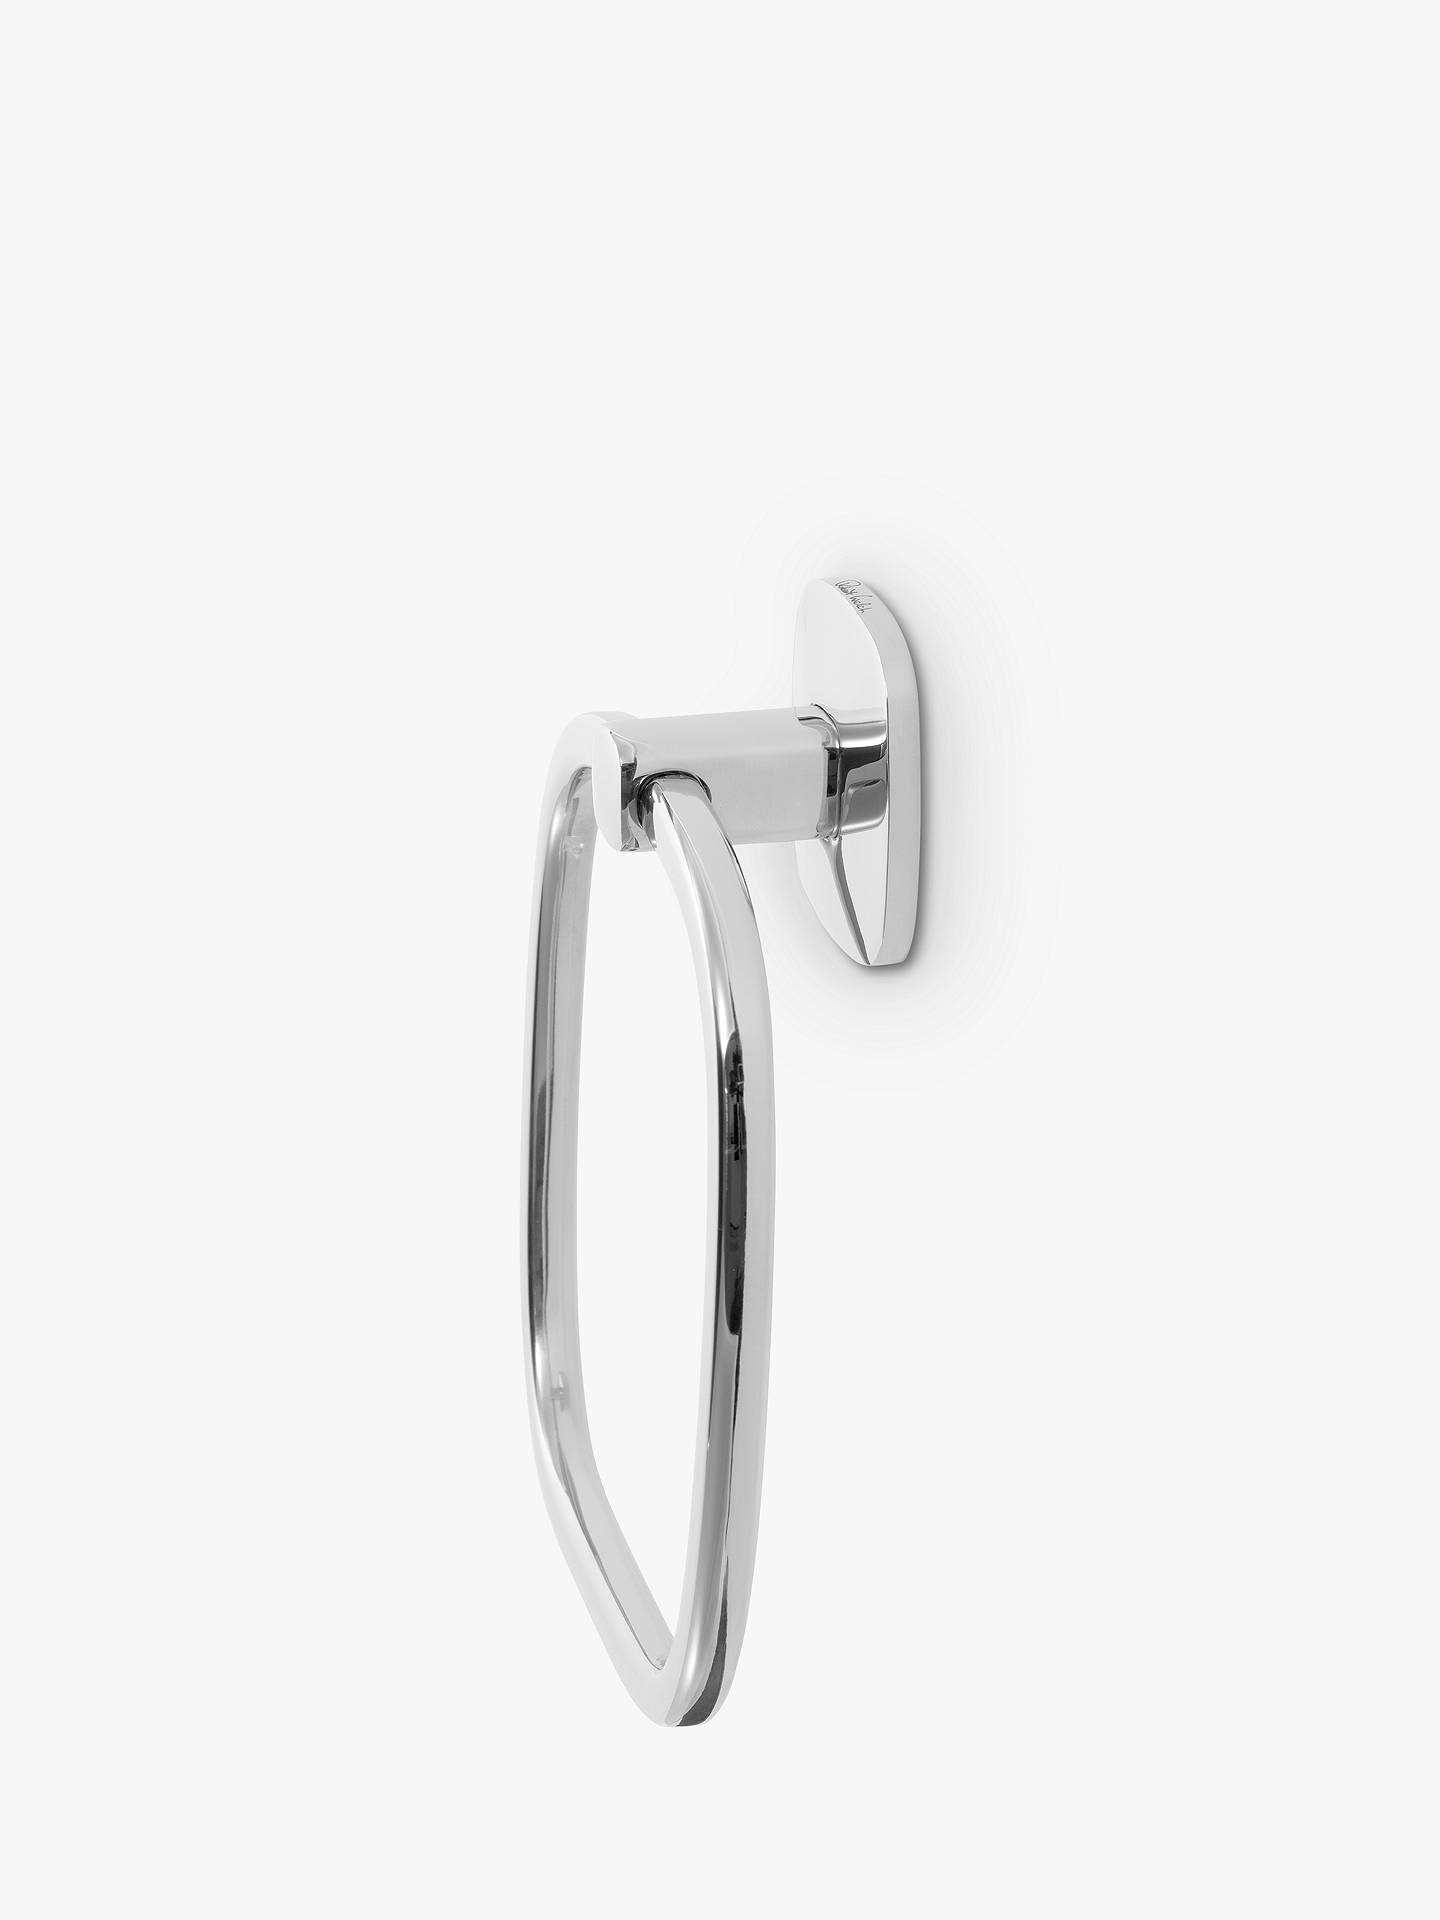 Dom i Meble STAINLESS STEEL DESIGNER SQUARE TOILET ROLL HOLDER TOWEL RING BATHROOM ACCESSORY Uchwyty na papier toaletowy